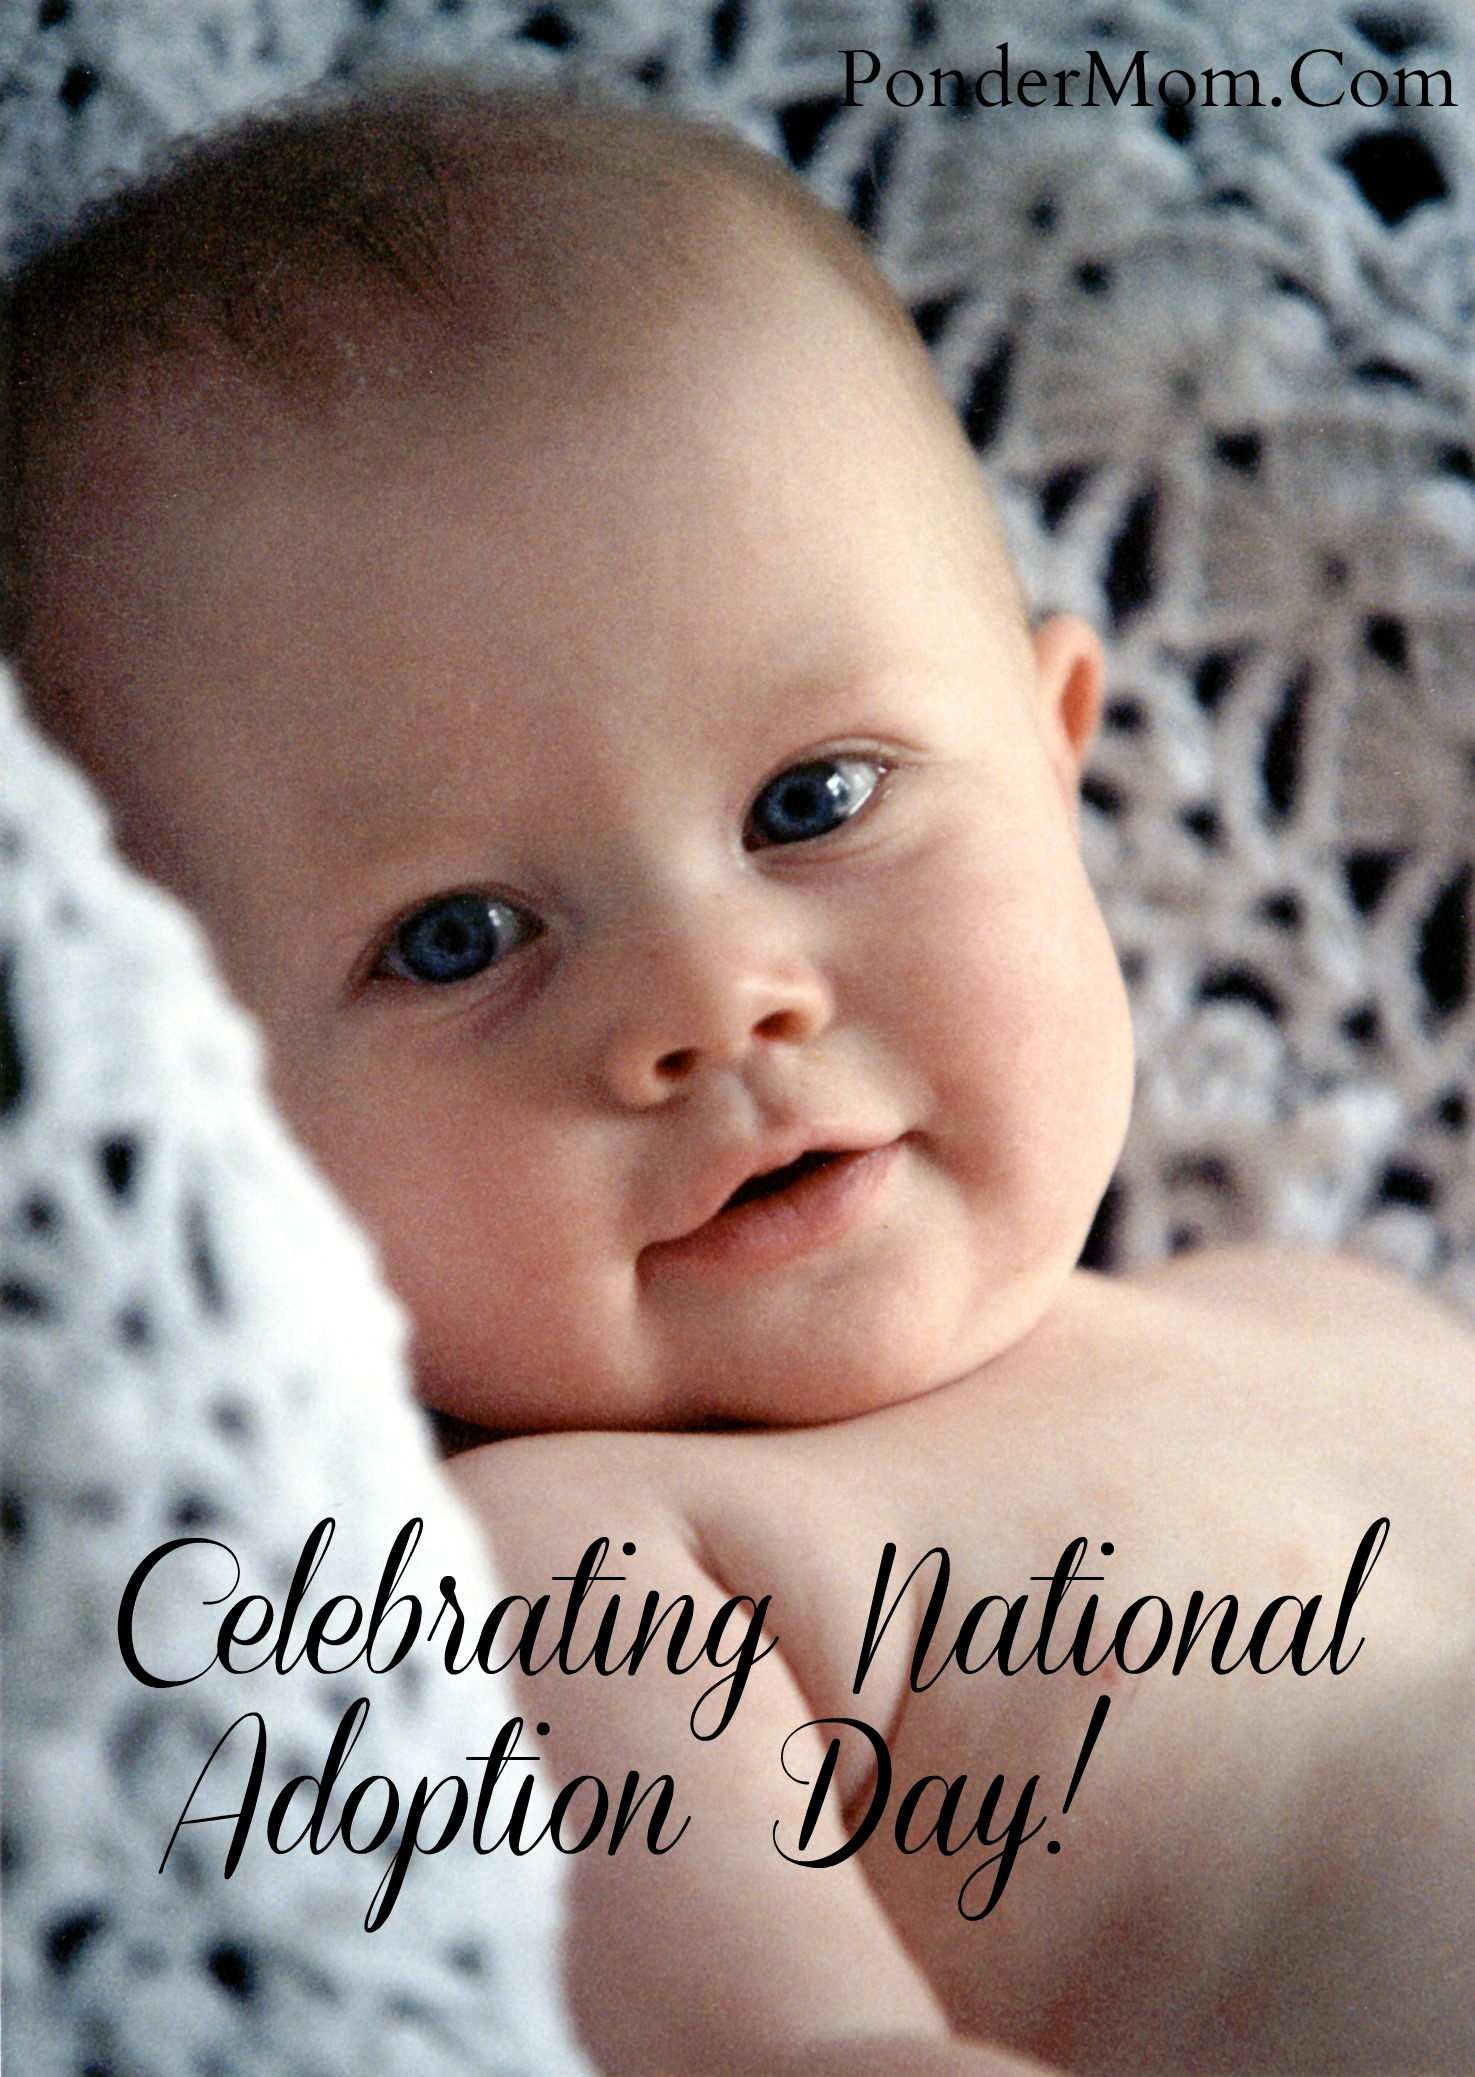 Our Adoption Tale on this, National Adoption Day